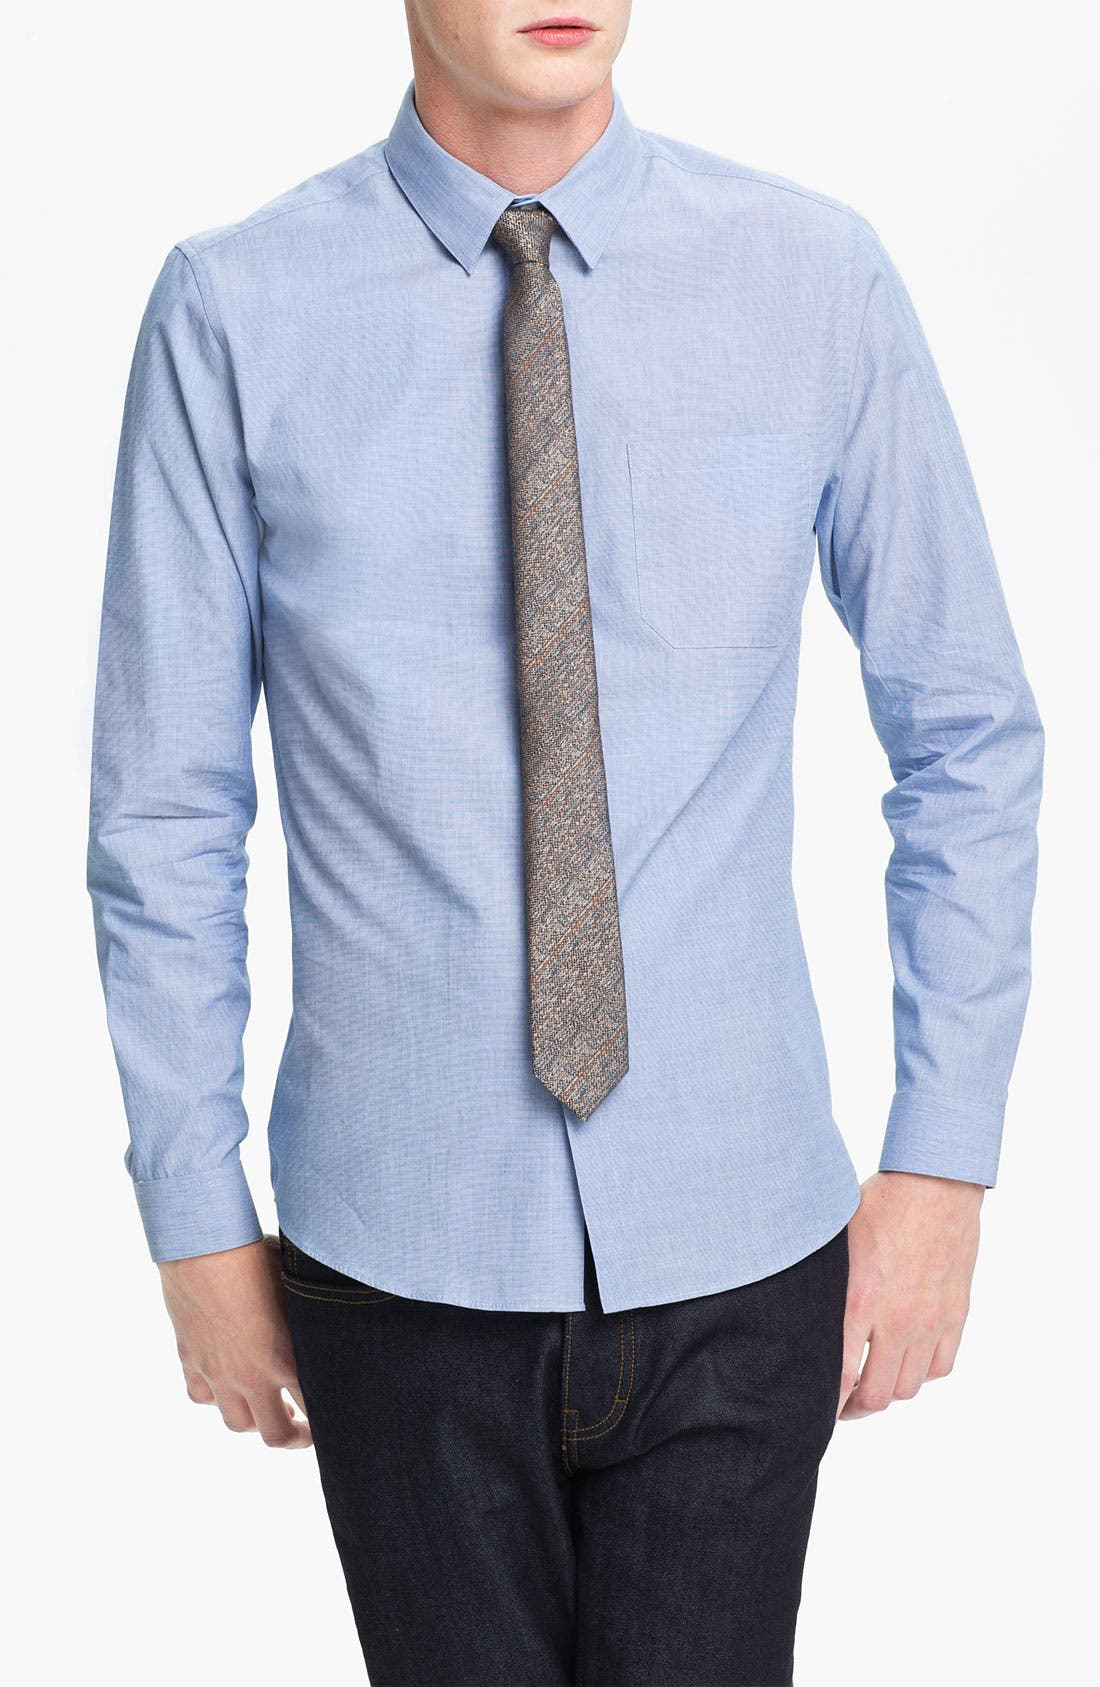 Main Image - Topman Slim Fit End-on-End Woven Dress Shirt